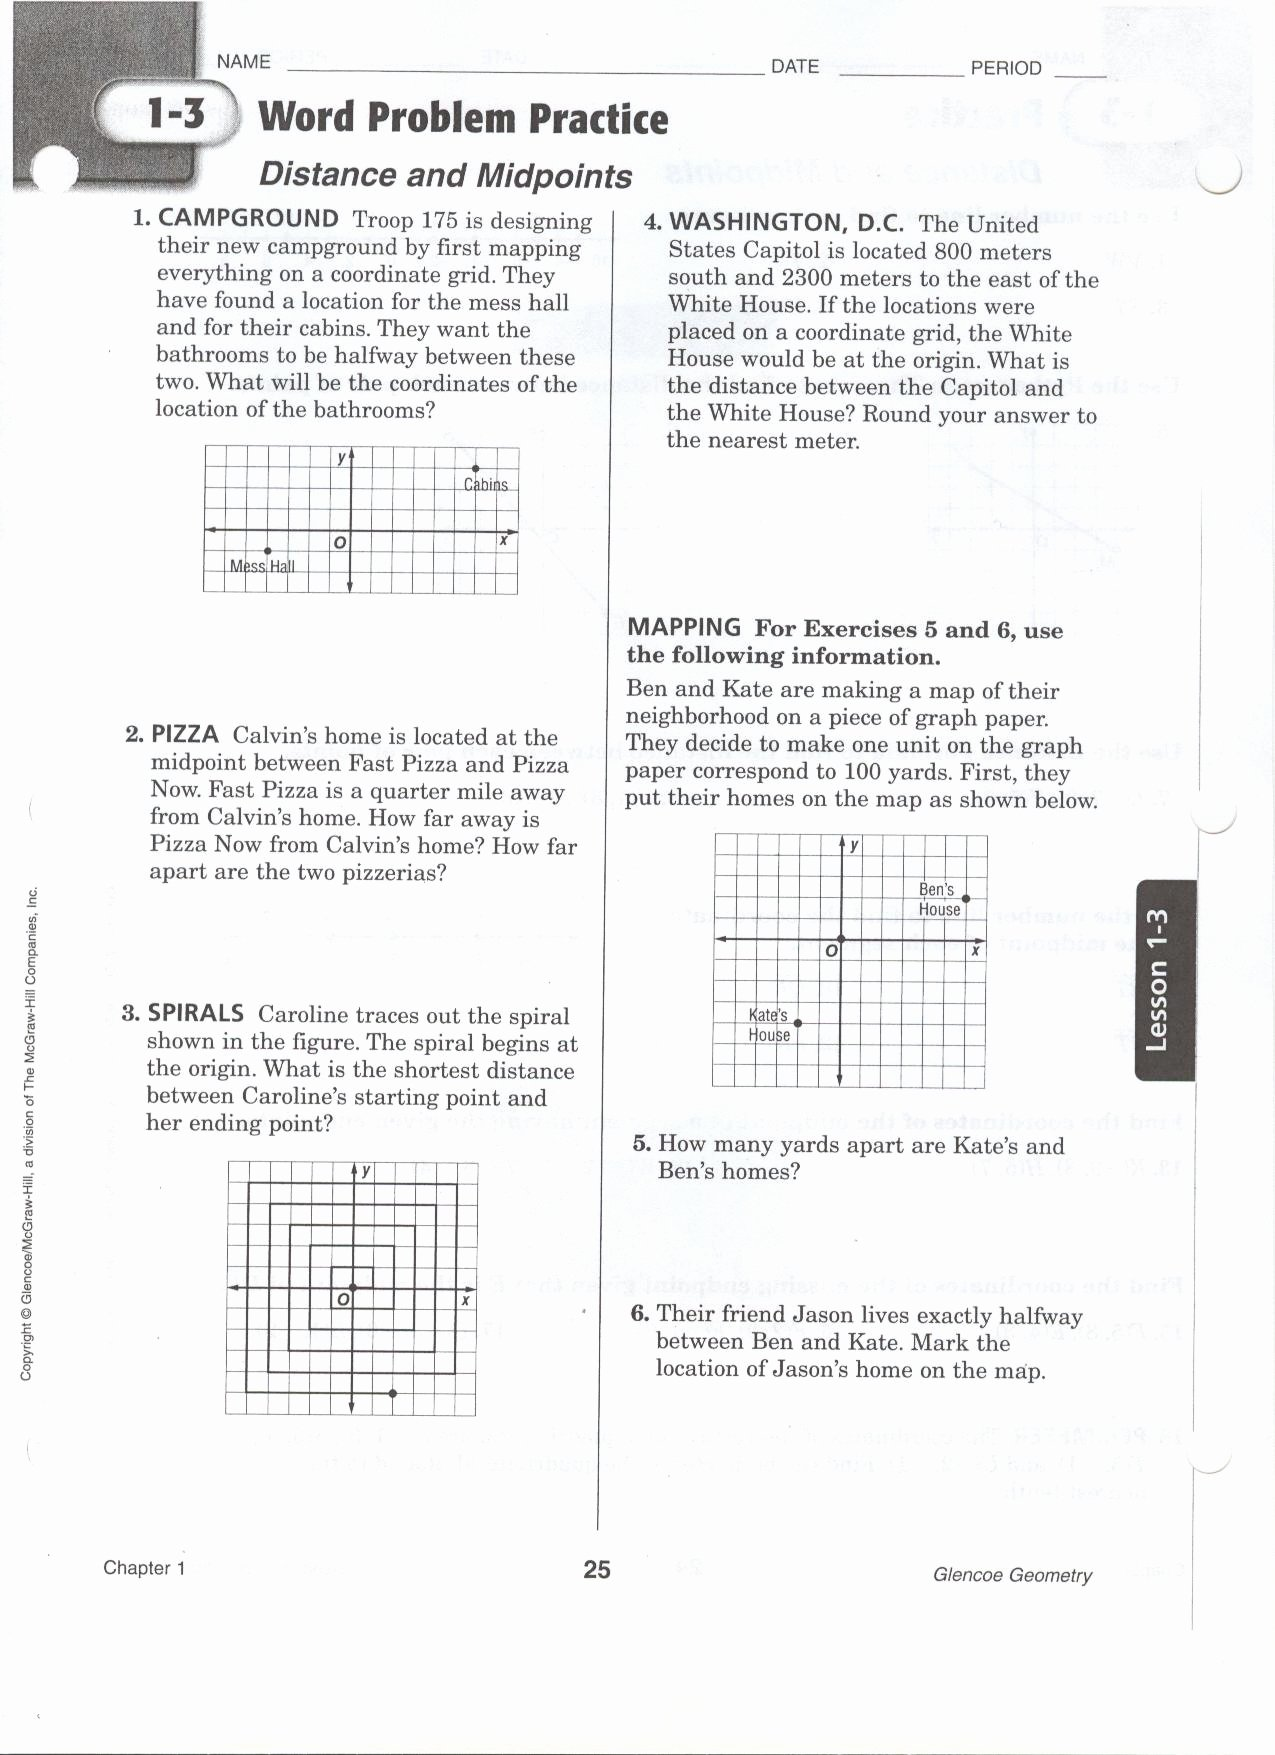 Midpoint and Distance Worksheet Luxury Midpoint and Distance Worksheet